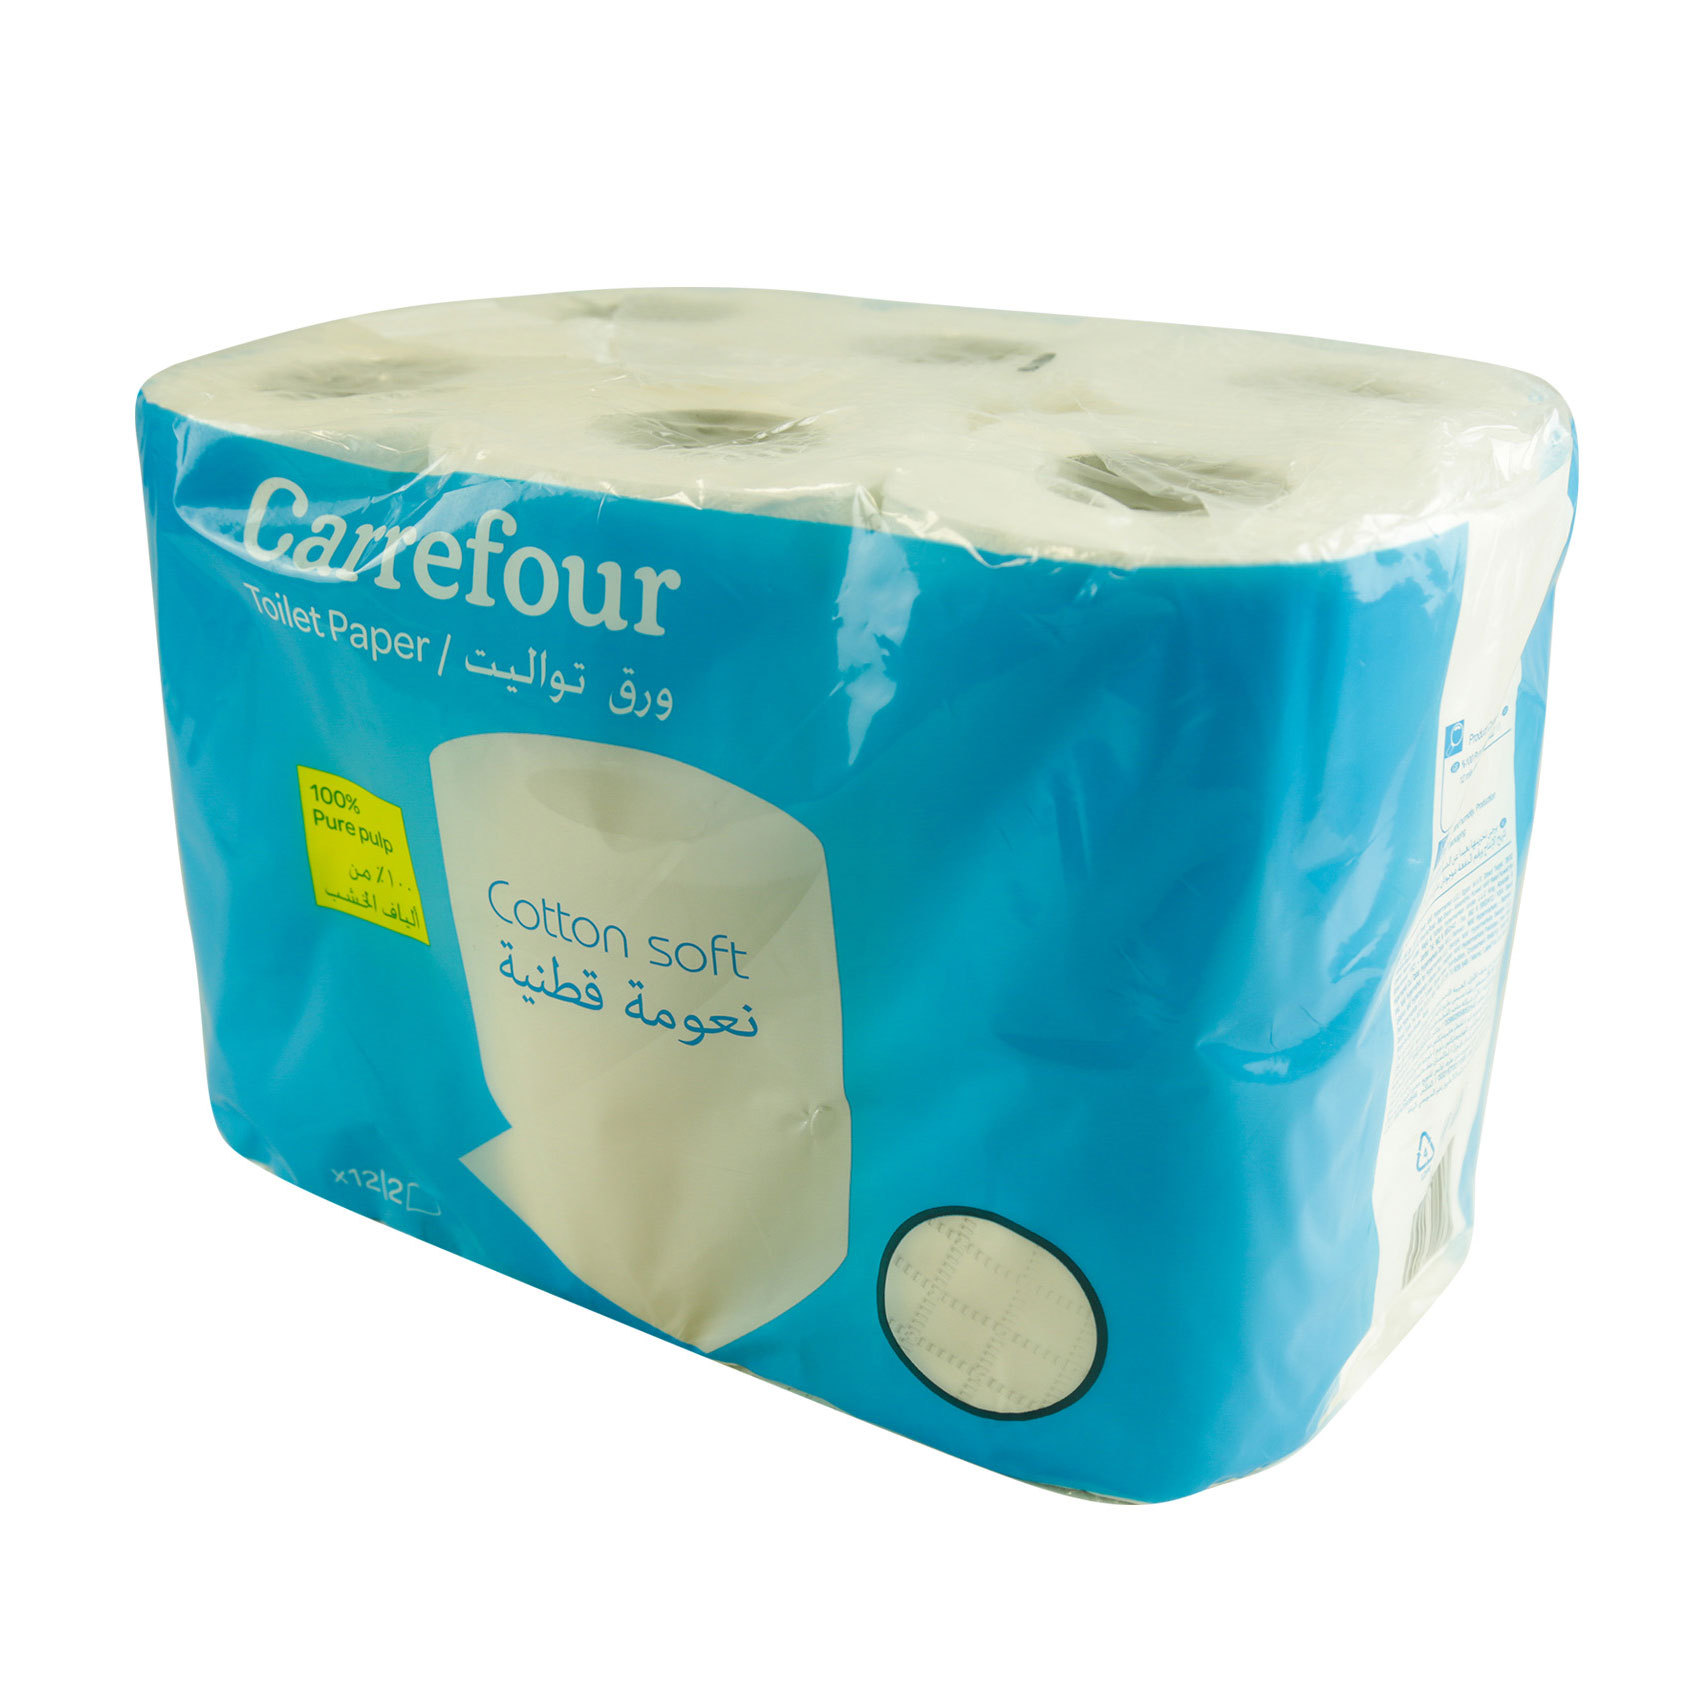 CRF T/ROLL 2 PLY X 12